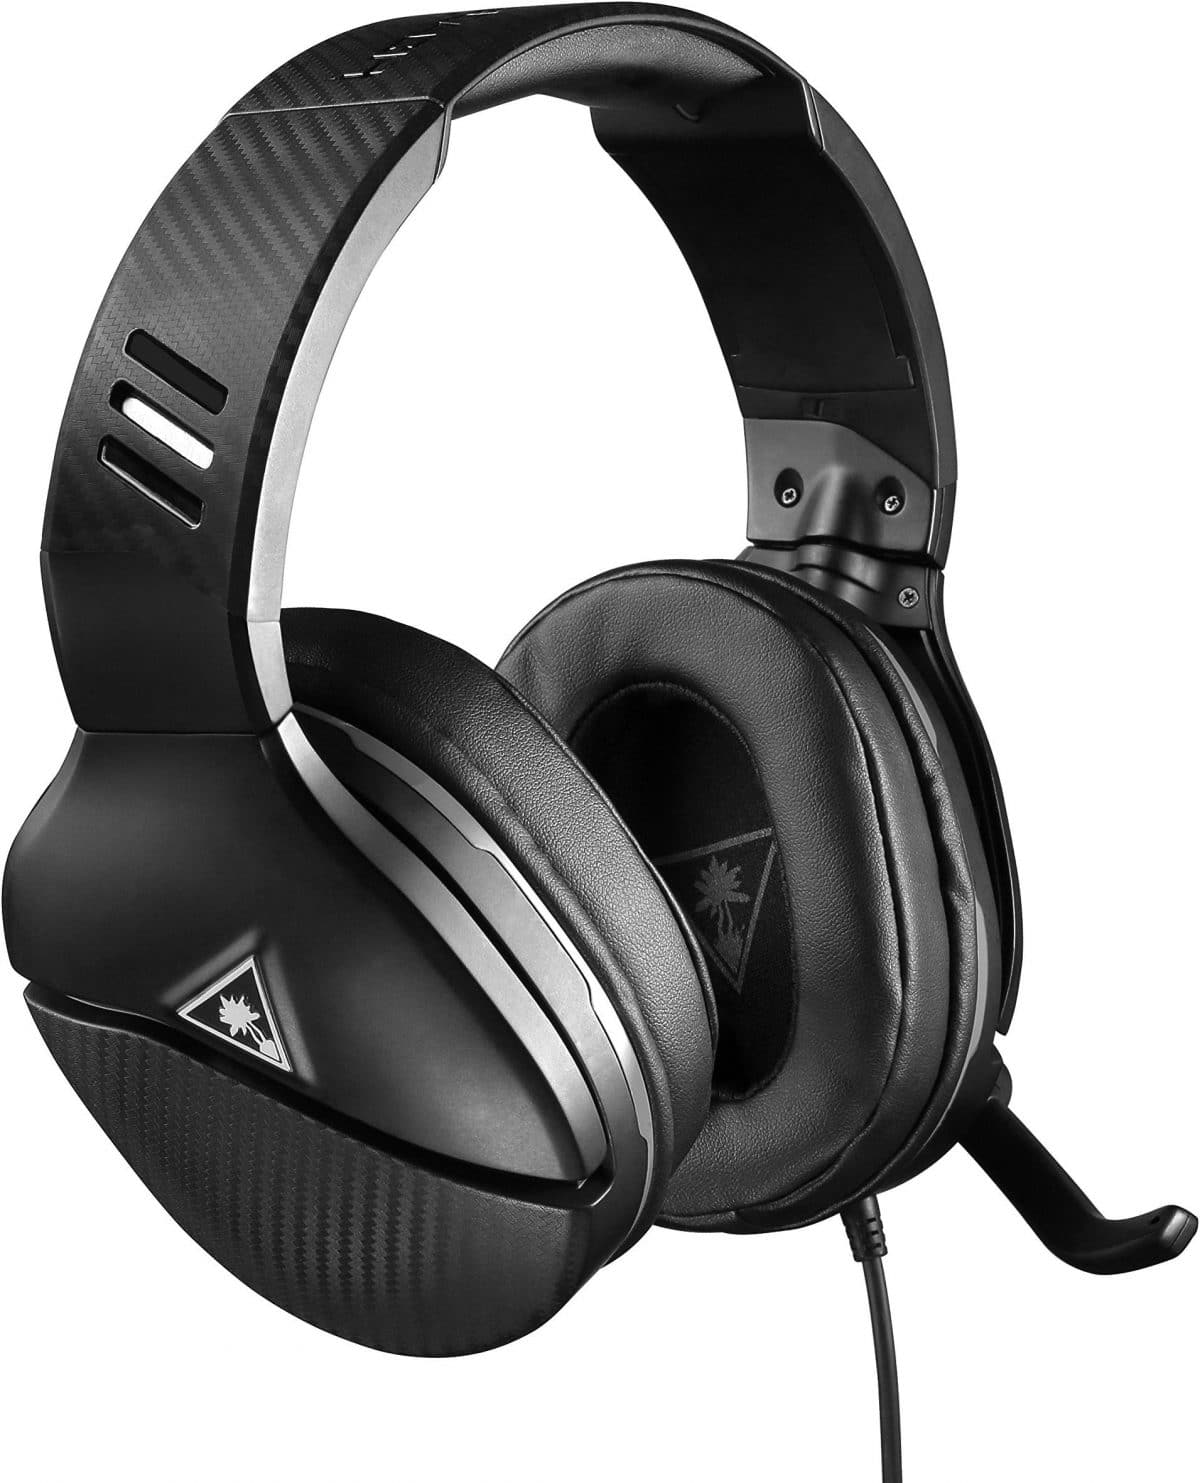 Best Cheap Xbox One Headsets 2019 (Under $50 / $100